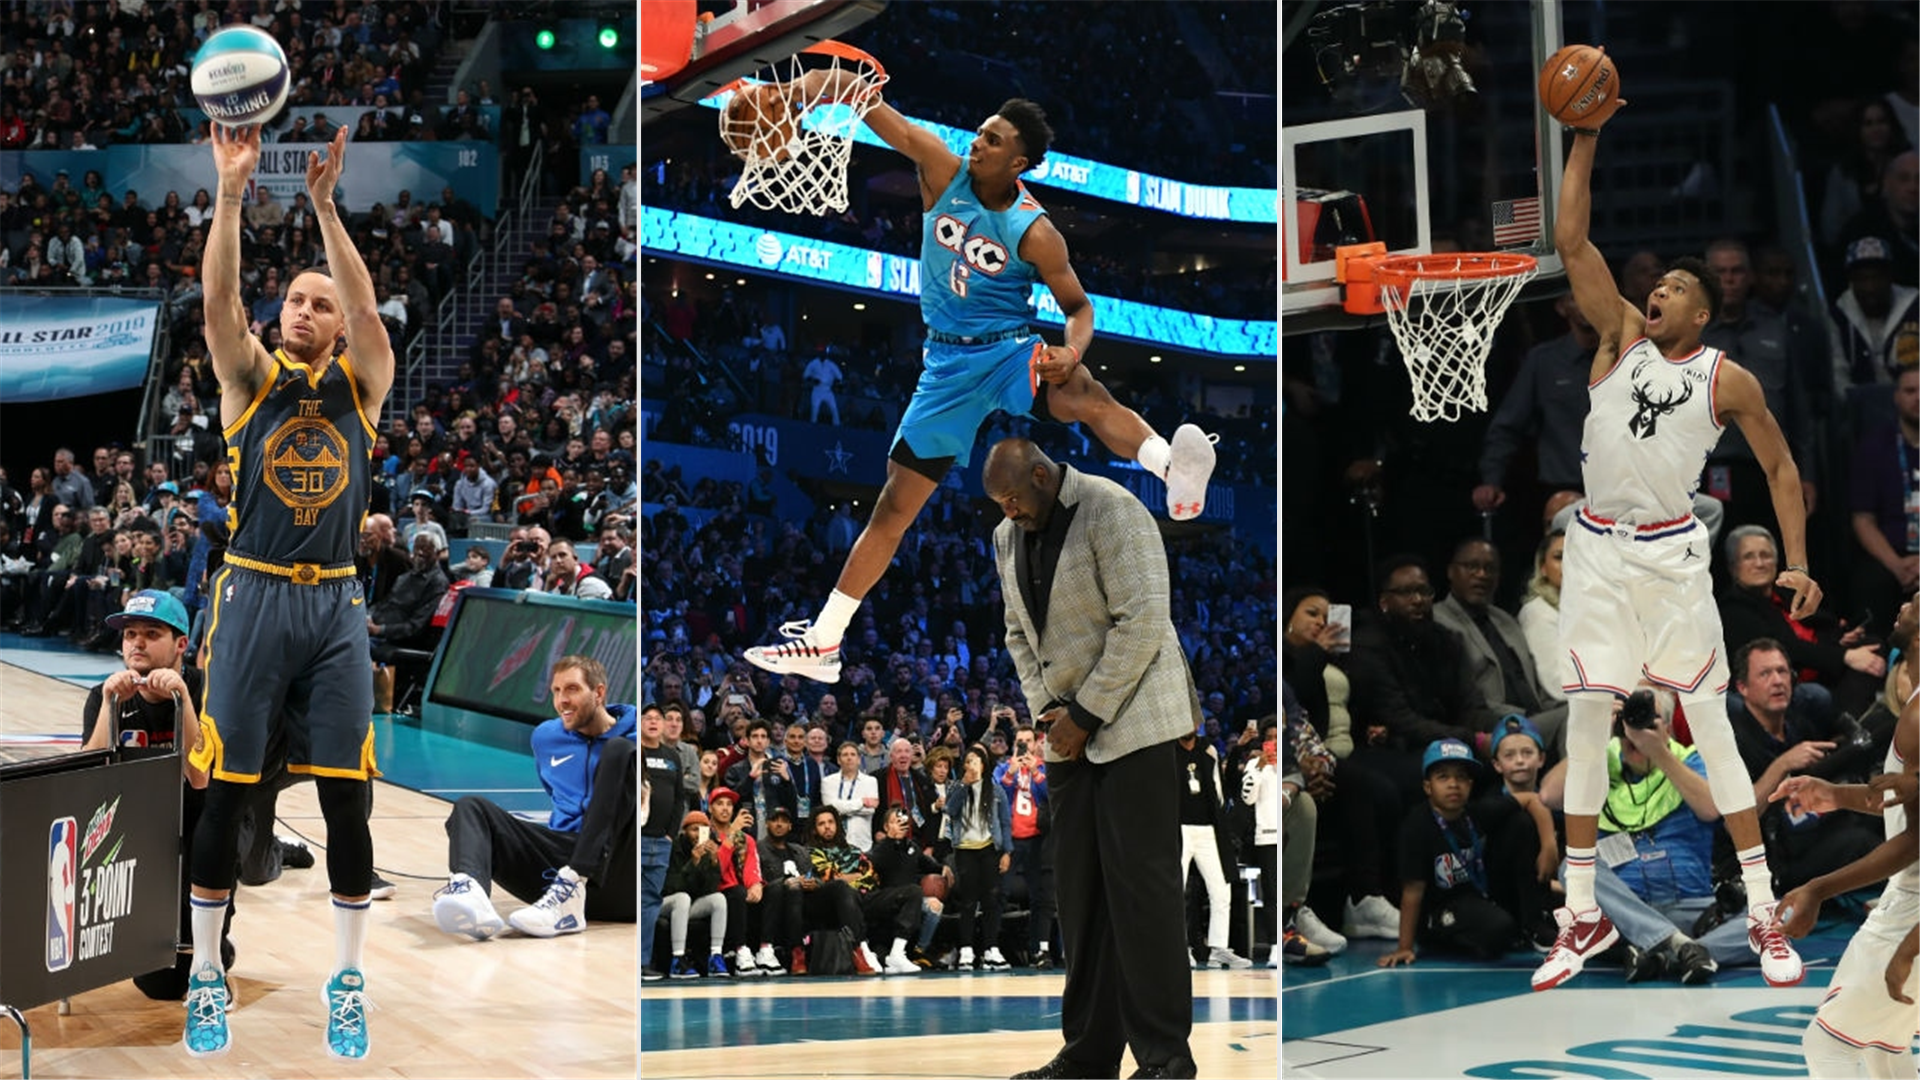 Look back over the best moments from the 2019 NBA All-Star Weekend | NBA.com